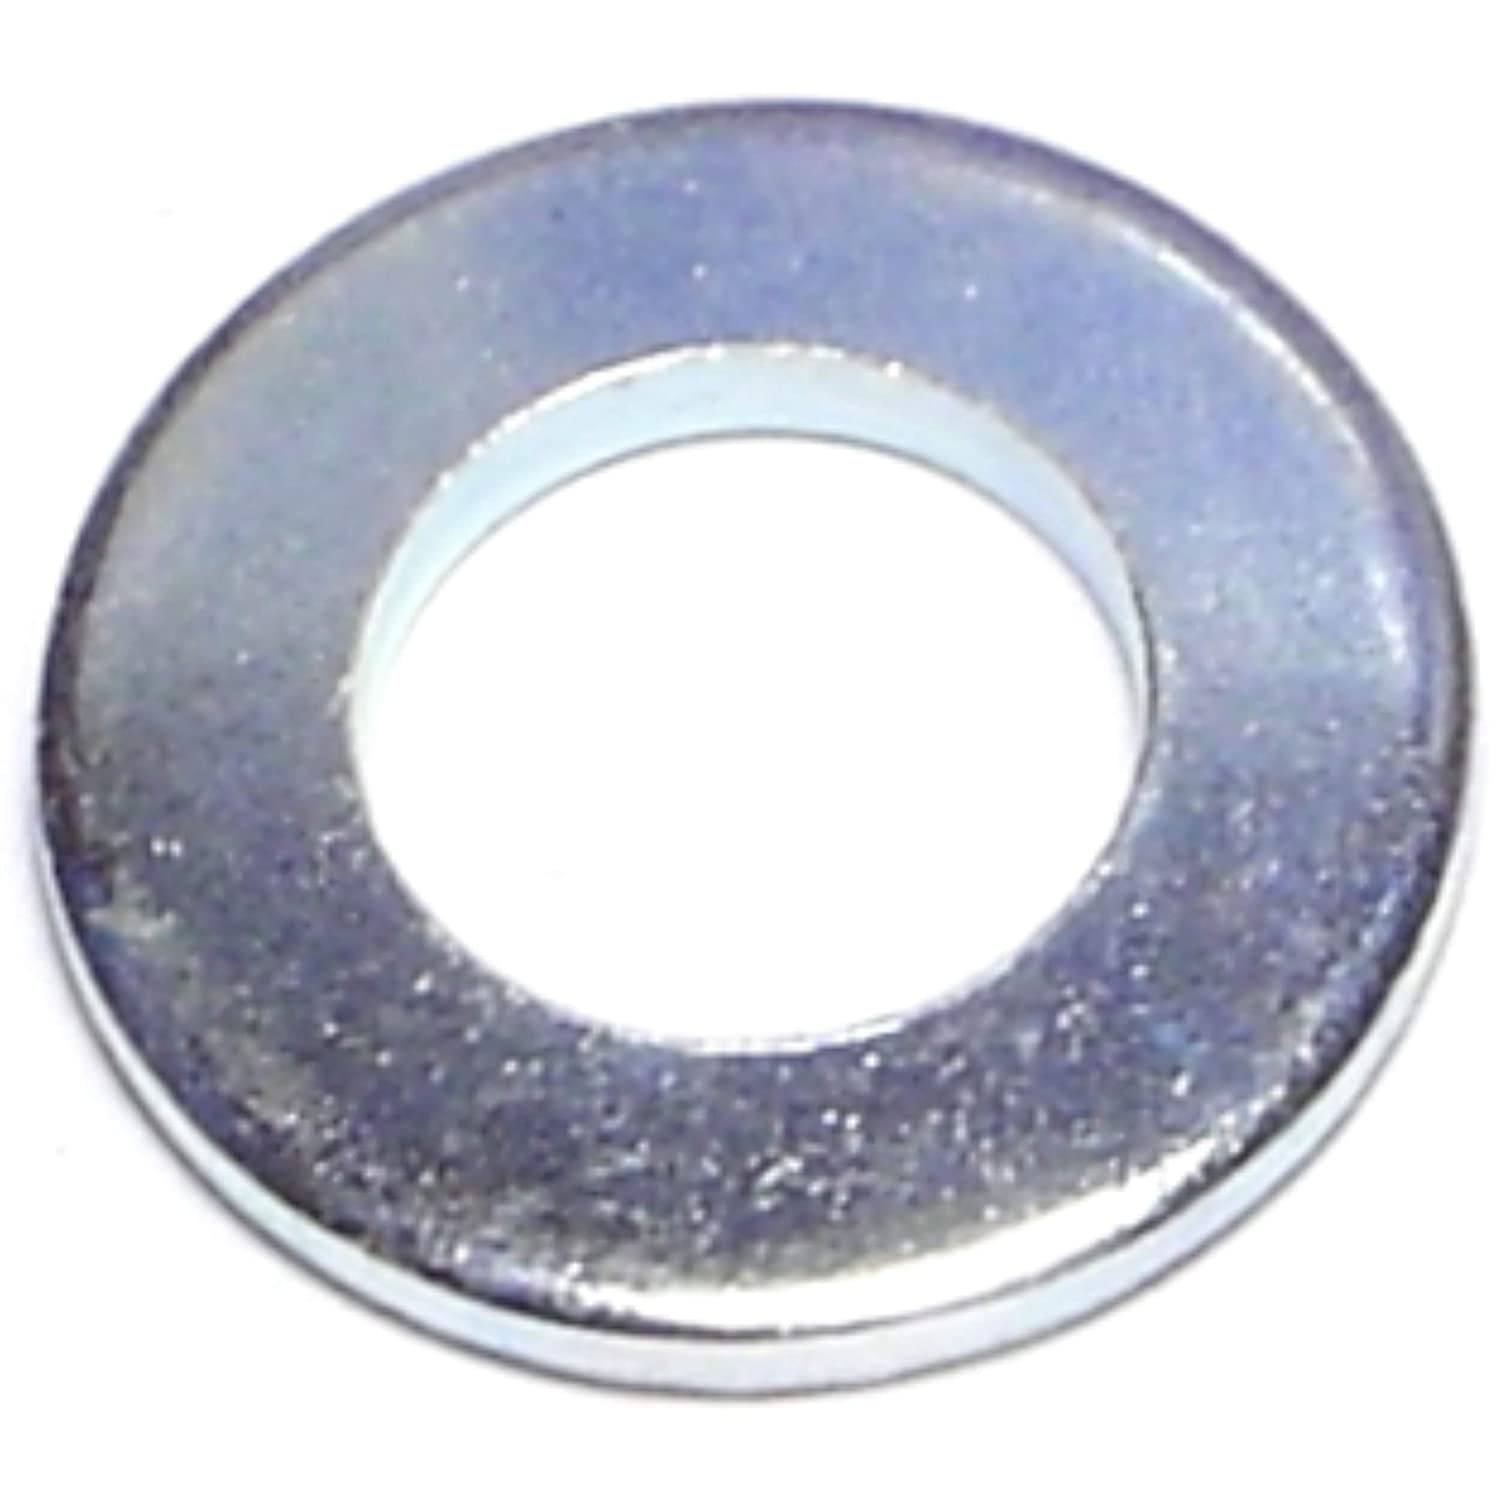 Piece-20 Hard-to-Find Fastener 014973272562 Class 8 Flat Washers 10mm